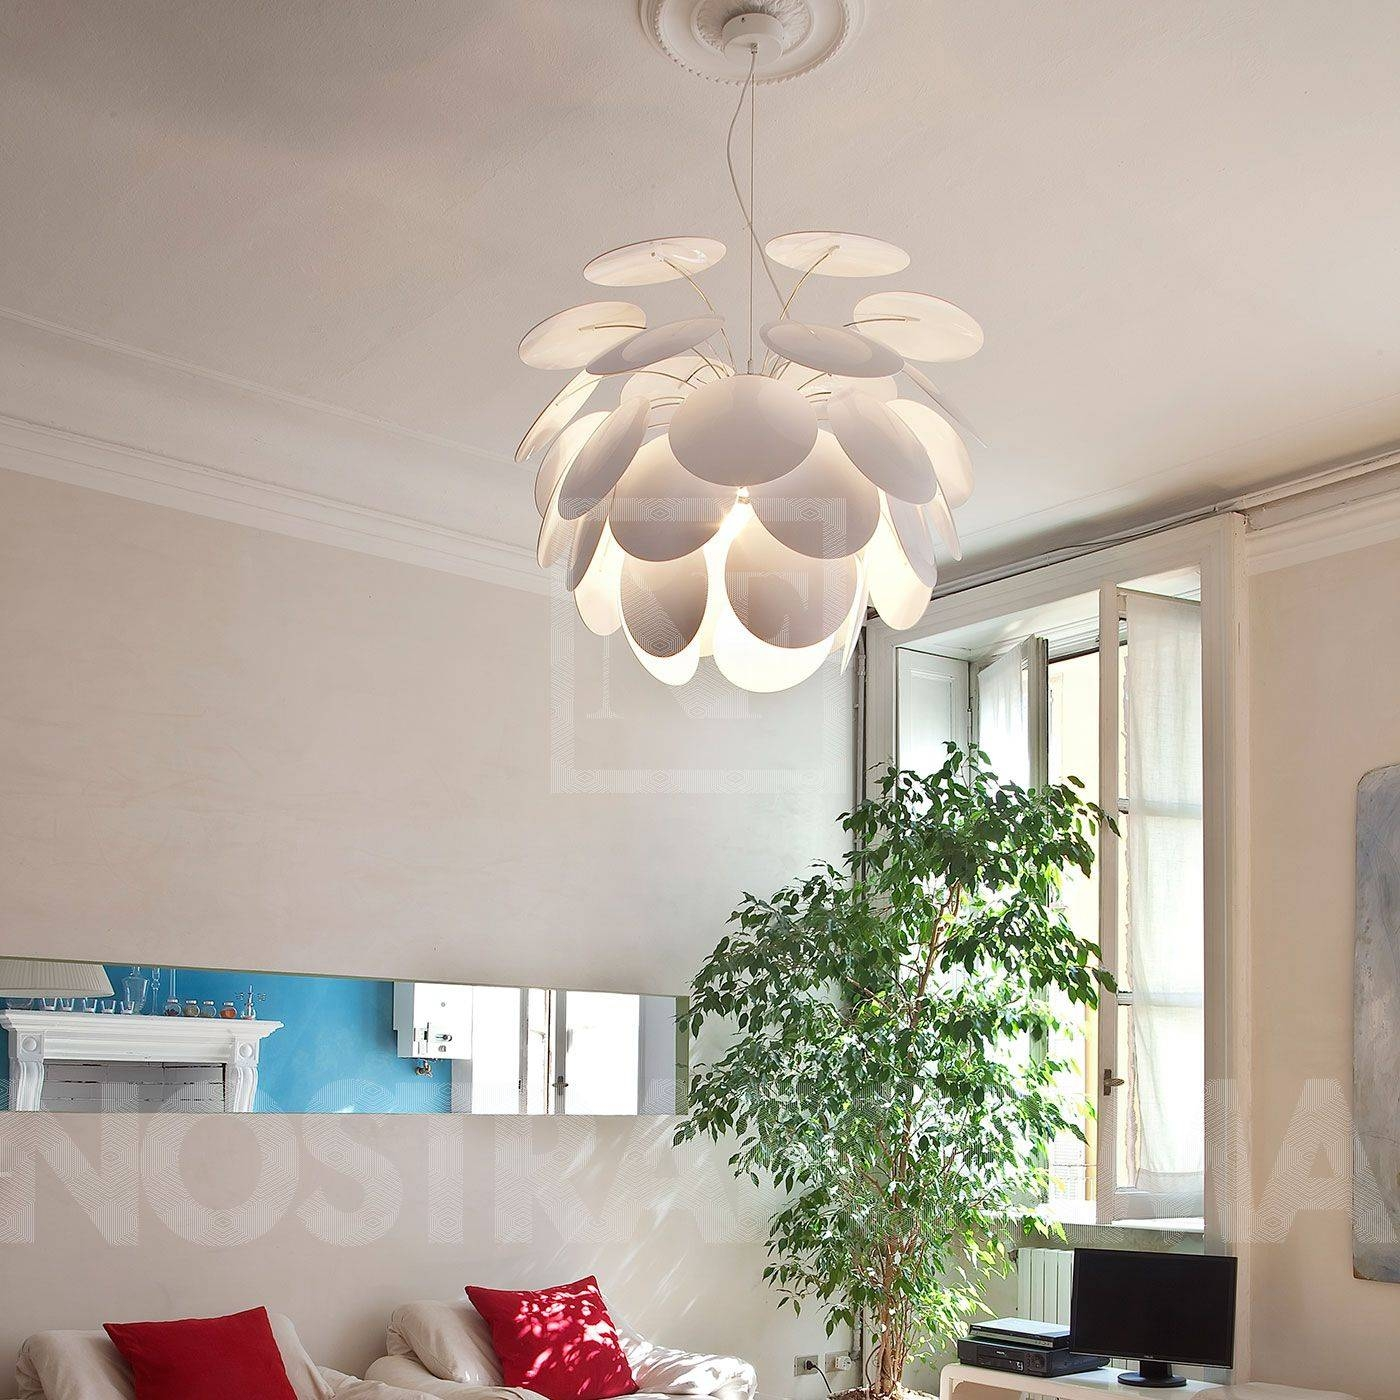 Marset Discoco 88 Pendant Lamp, Large » Modern And Contemporary with regard to Discoco Pendant Lights (Image 15 of 15)